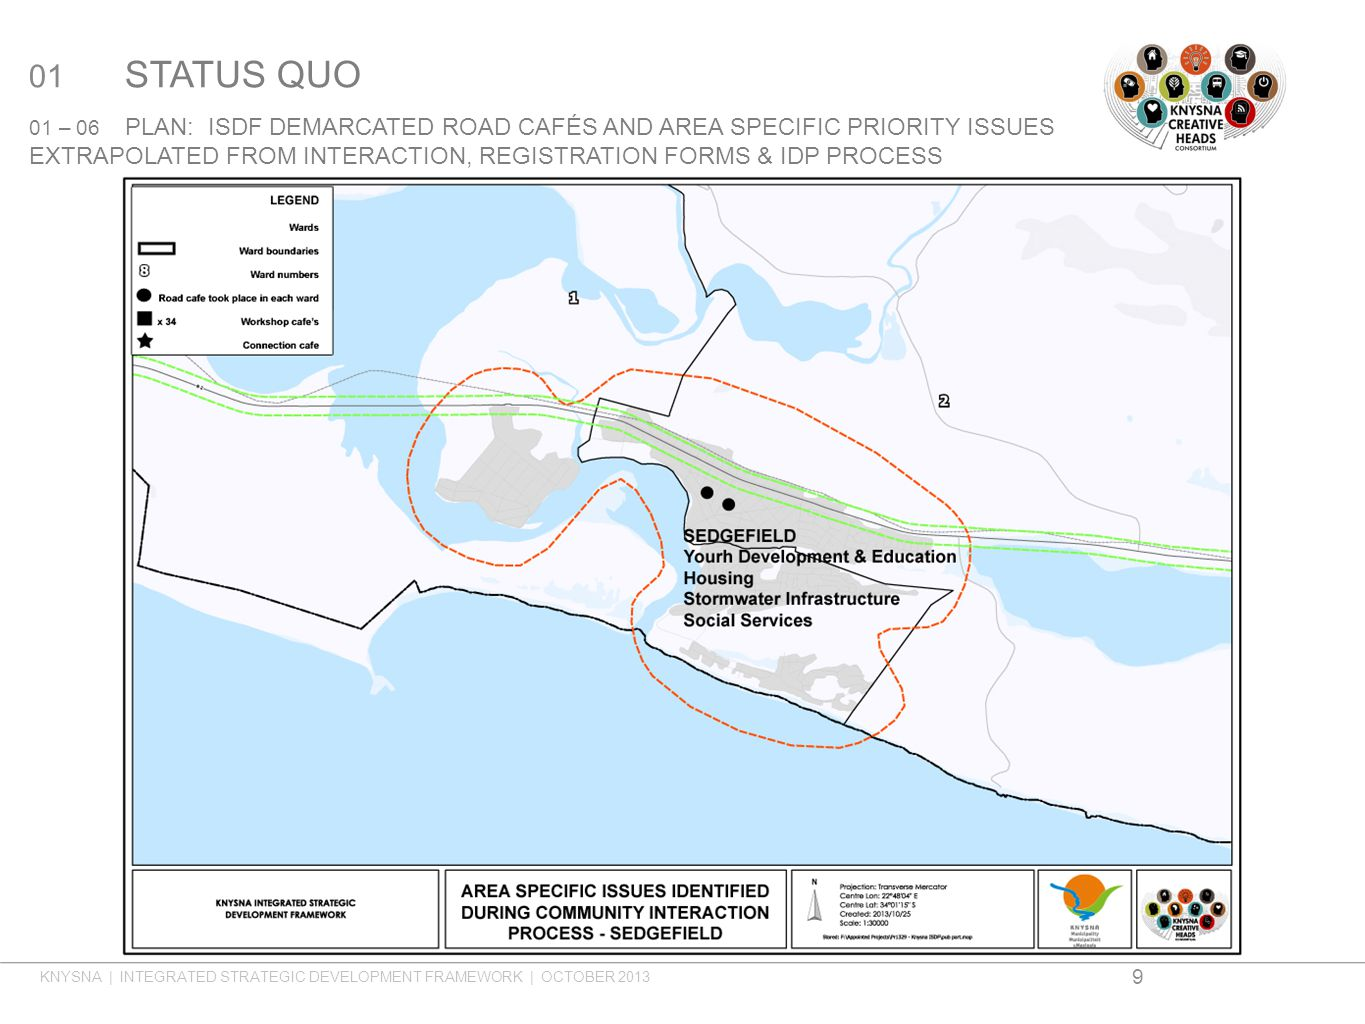 01 STATUS QUO 01 – 06 PLAN: ISDF DEMARCATED ROAD CAFÉS AND AREA SPECIFIC PRIORITY ISSUES EXTRAPOLATED FROM INTERACTION, REGISTRATION FORMS & IDP PROCESS KNYSNA | INTEGRATED STRATEGIC DEVELOPMENT FRAMEWORK | OCTOBER 2013 9